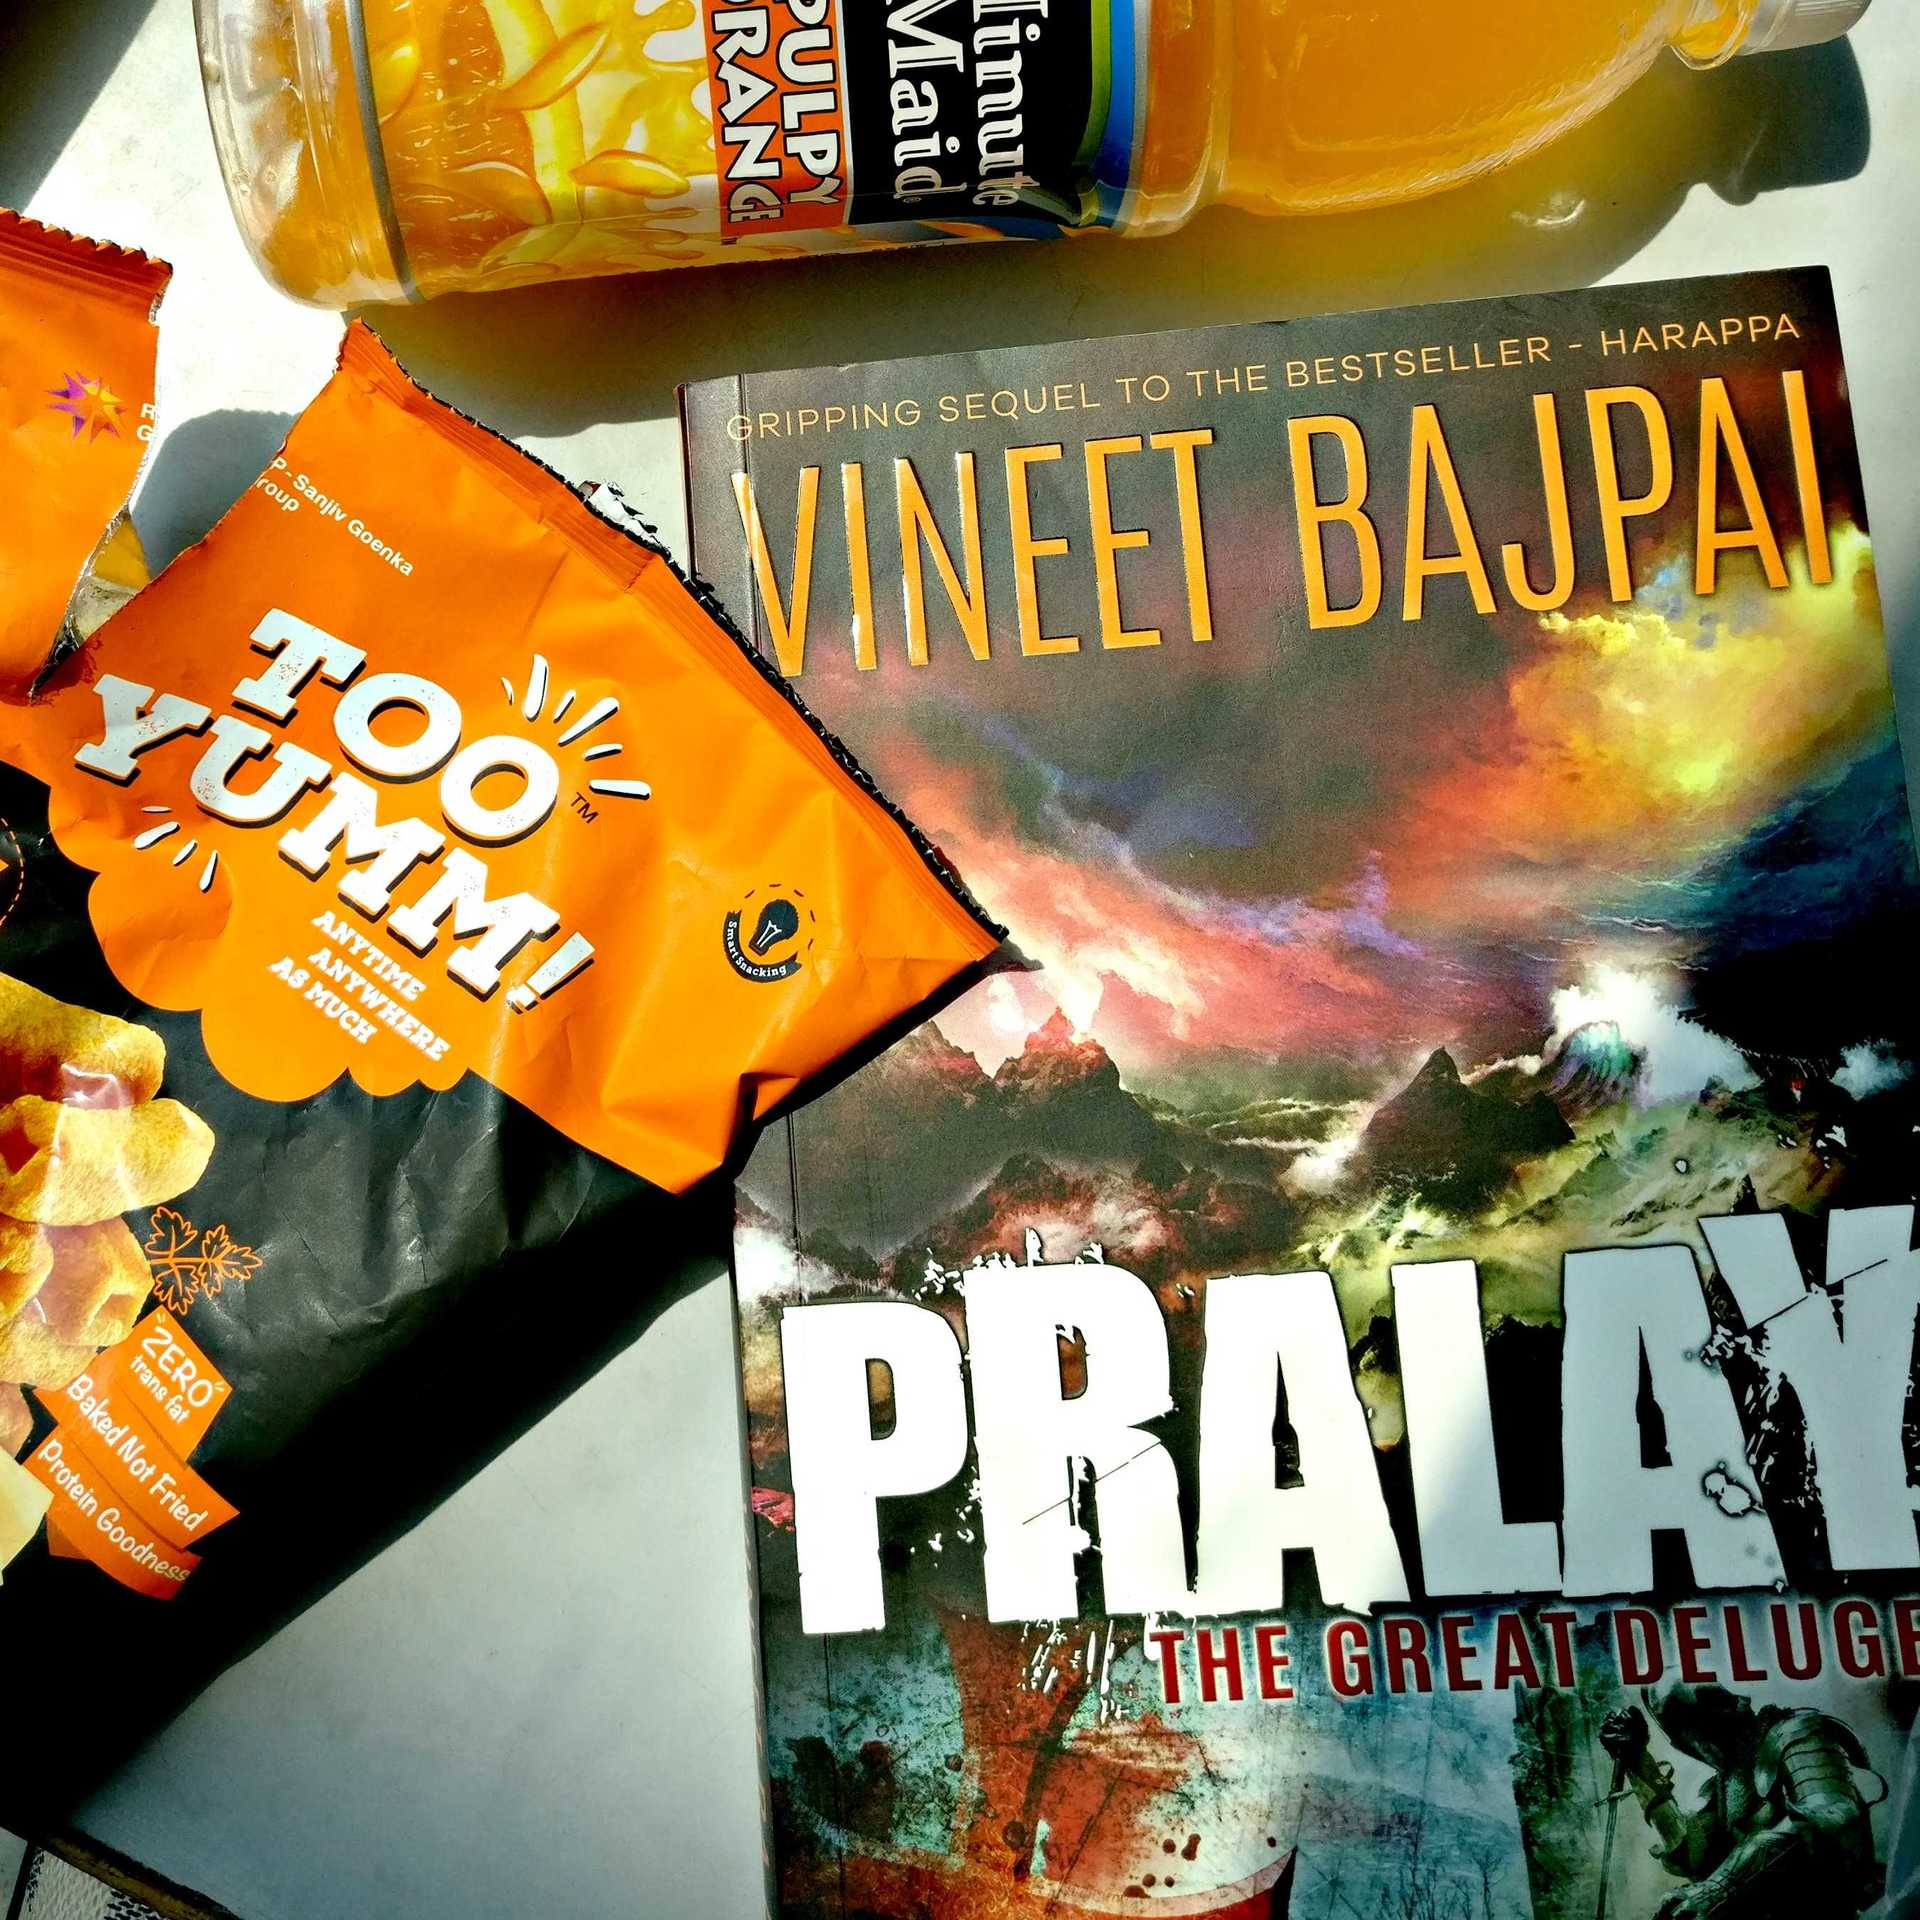 Pralay, The Great Deluge by Vineet Bajpai  image